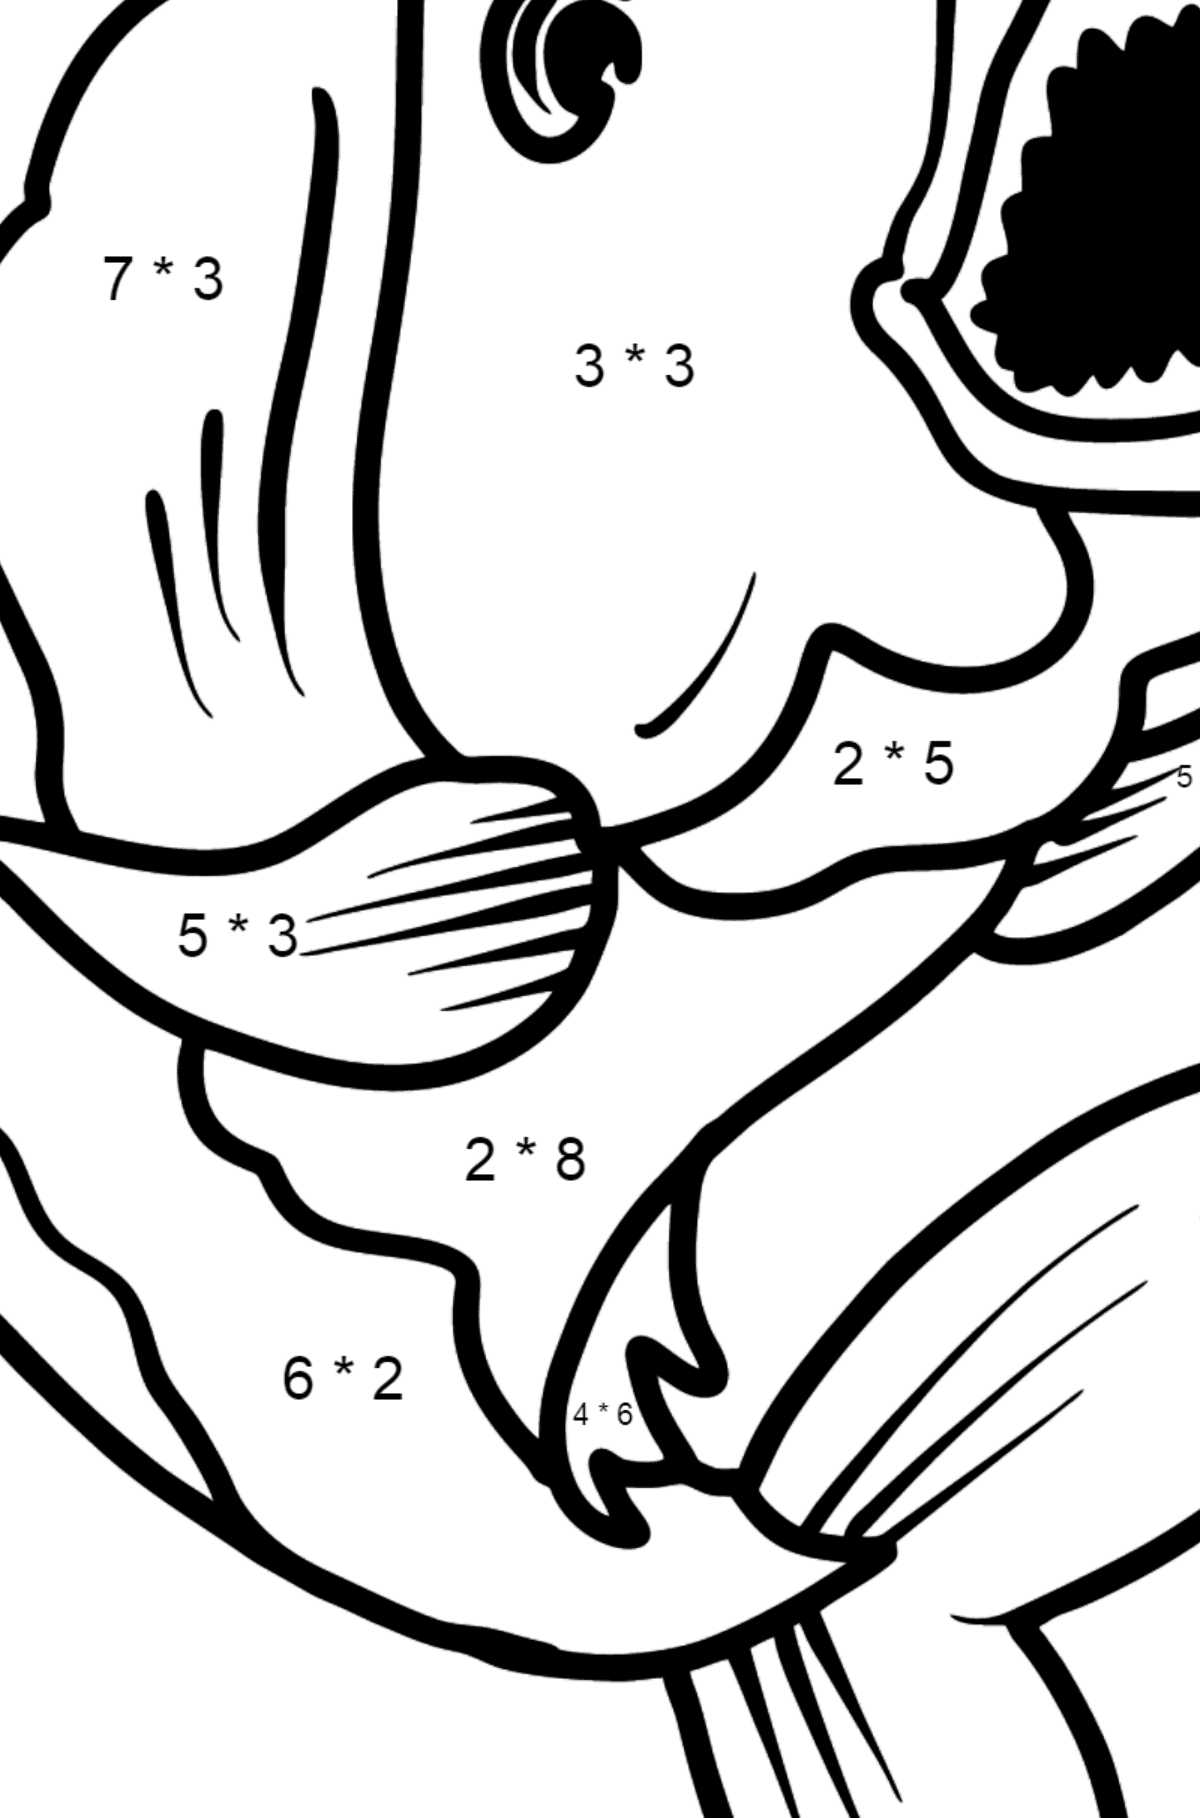 Piranha coloring page - Math Coloring - Multiplication for Kids